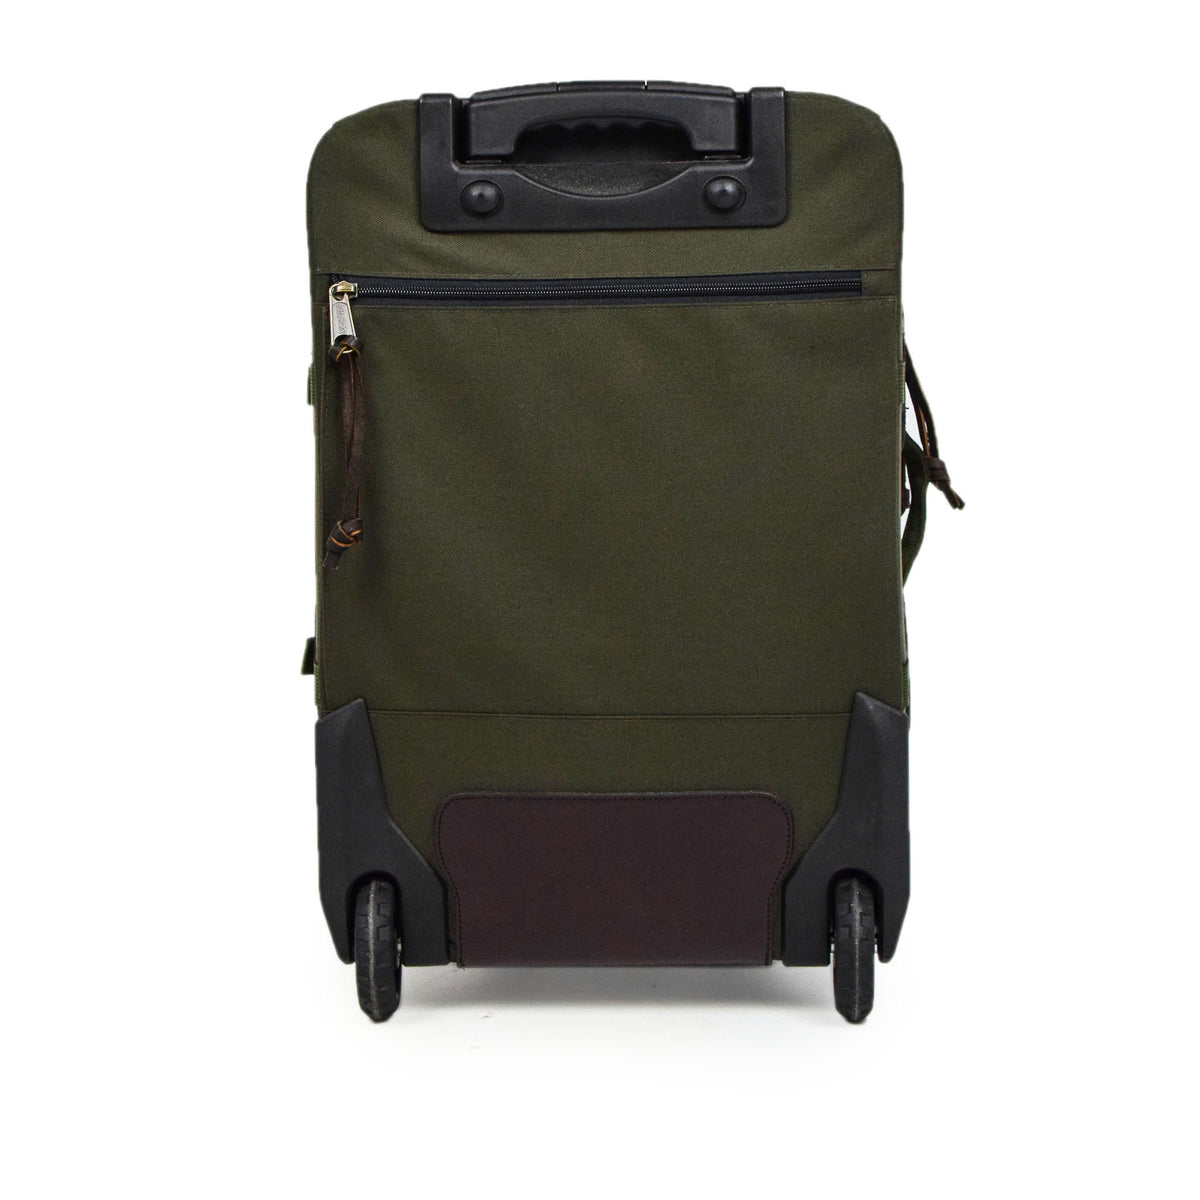 Filson Dryden Cordura Nylon 2-Wheel Carry-on Bag back